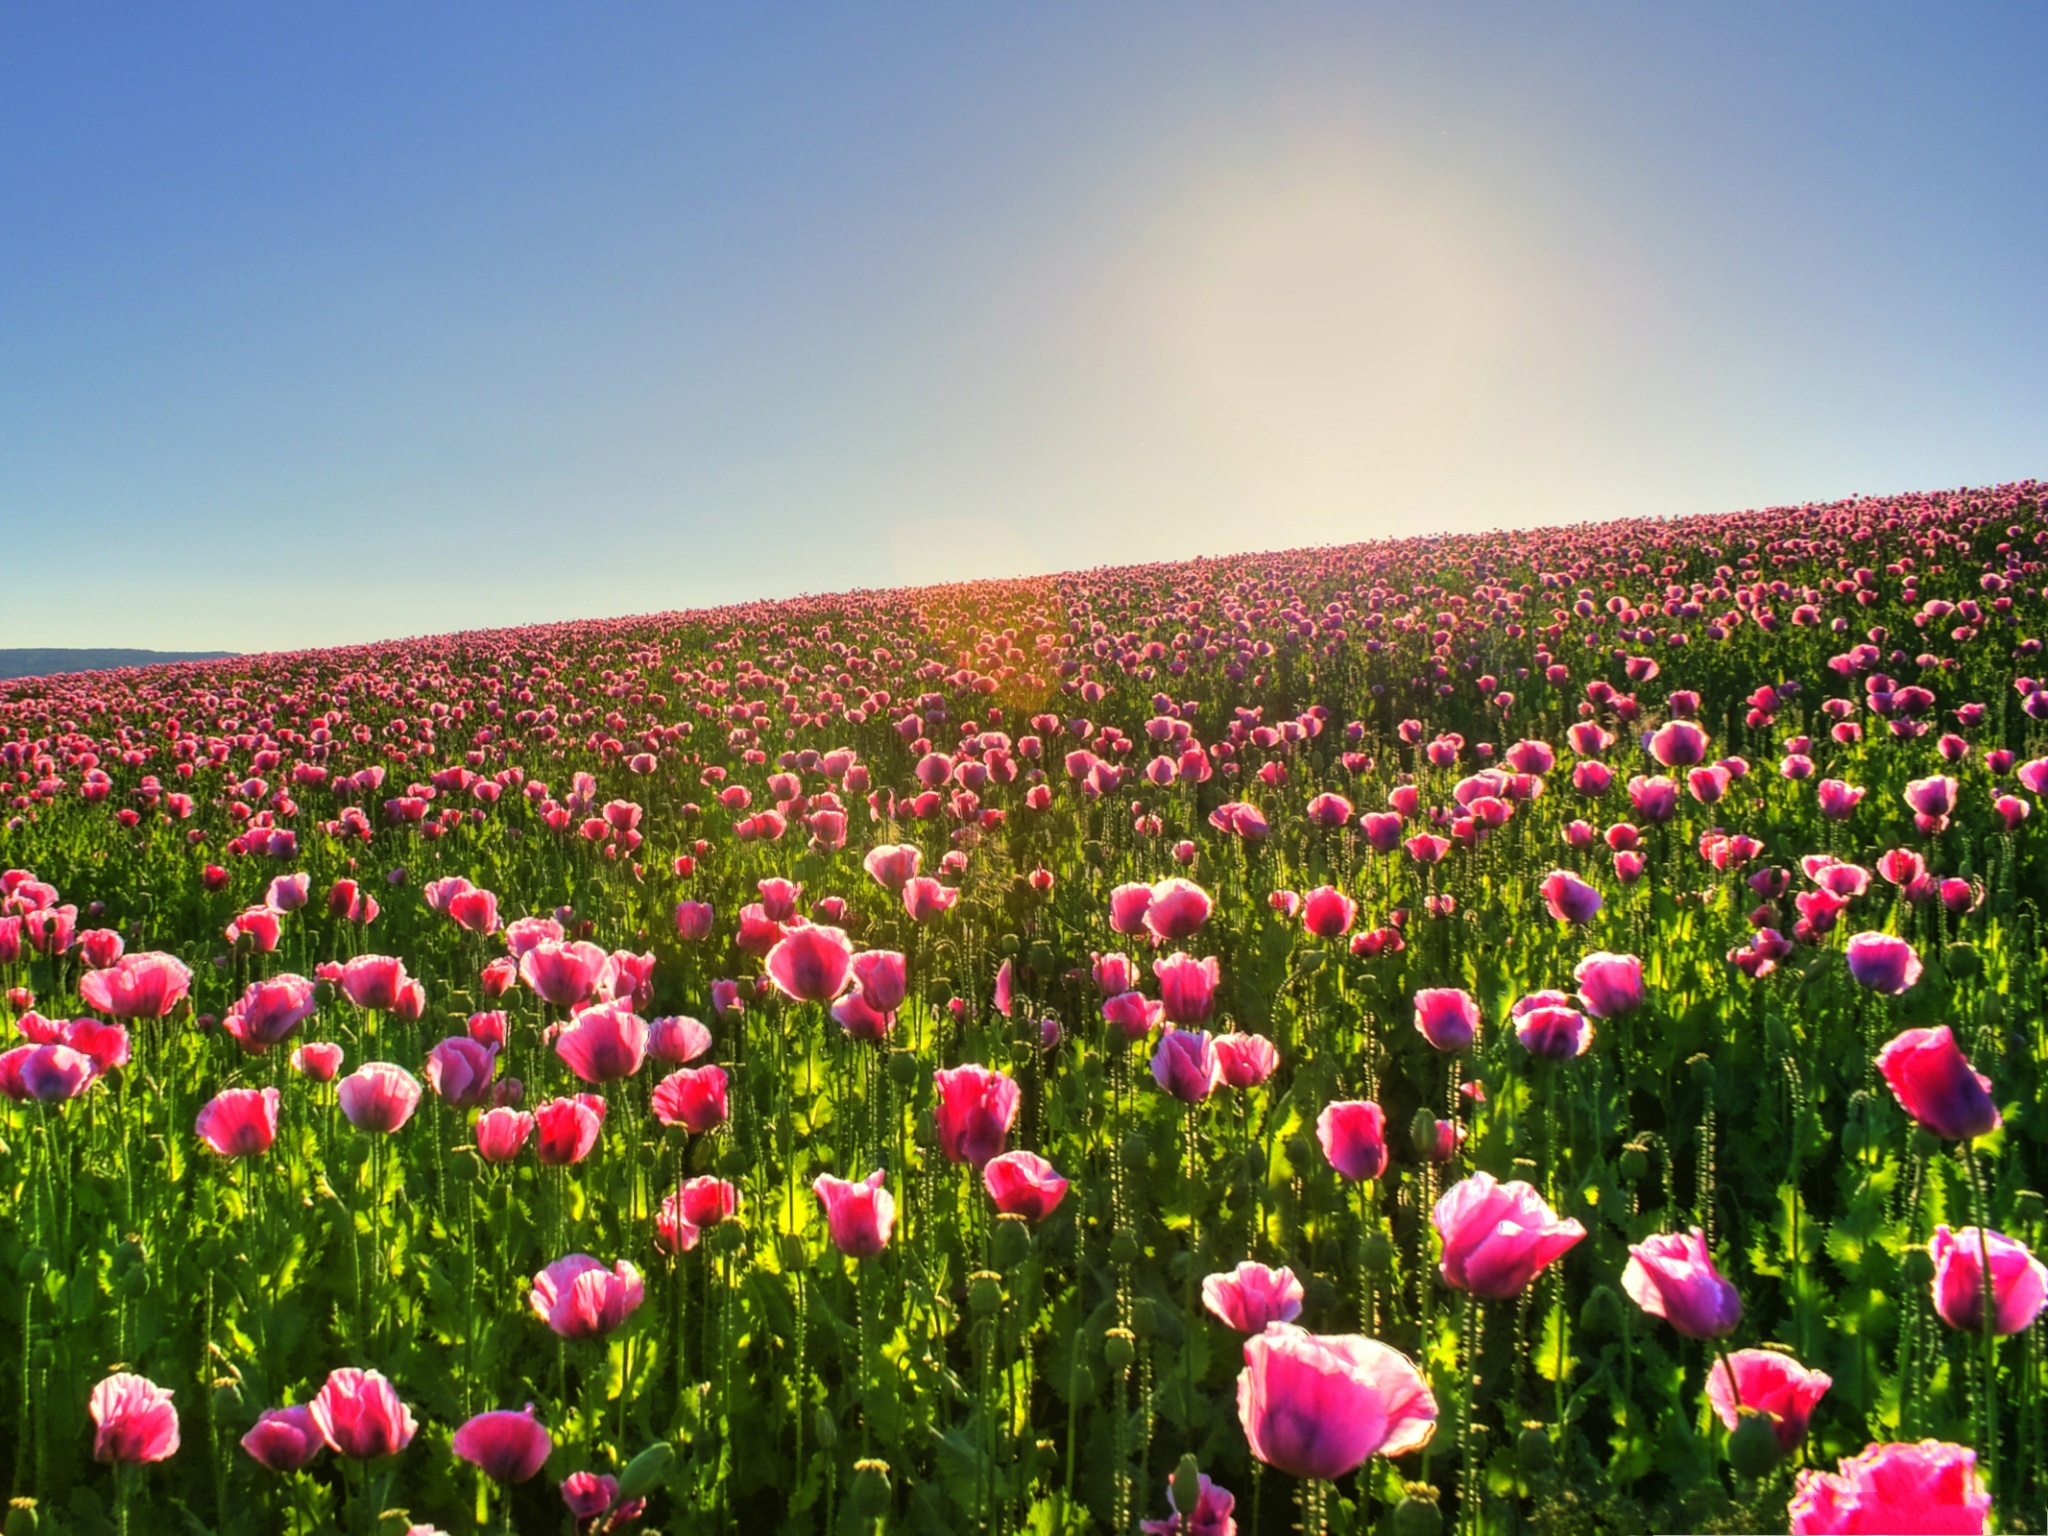 click to free download the wallpaper--Beautiful Flower Field, Pink Blooming Flowers in Prosperous Growth, Under the Blue Sky 2048X1536 free wallpaper download